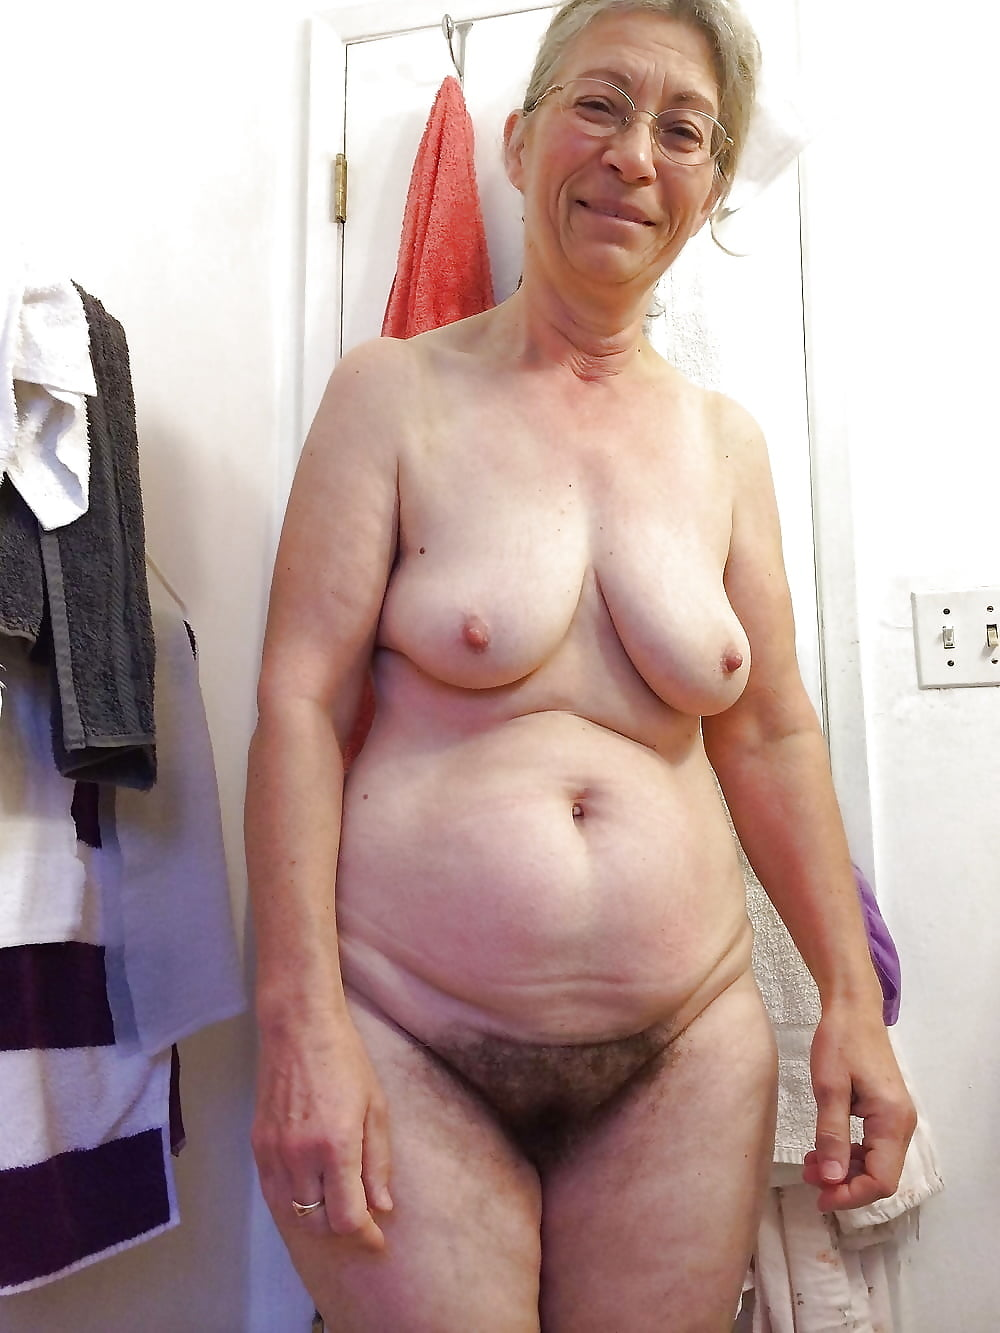 Nude granny picture, sexy egyptian woman